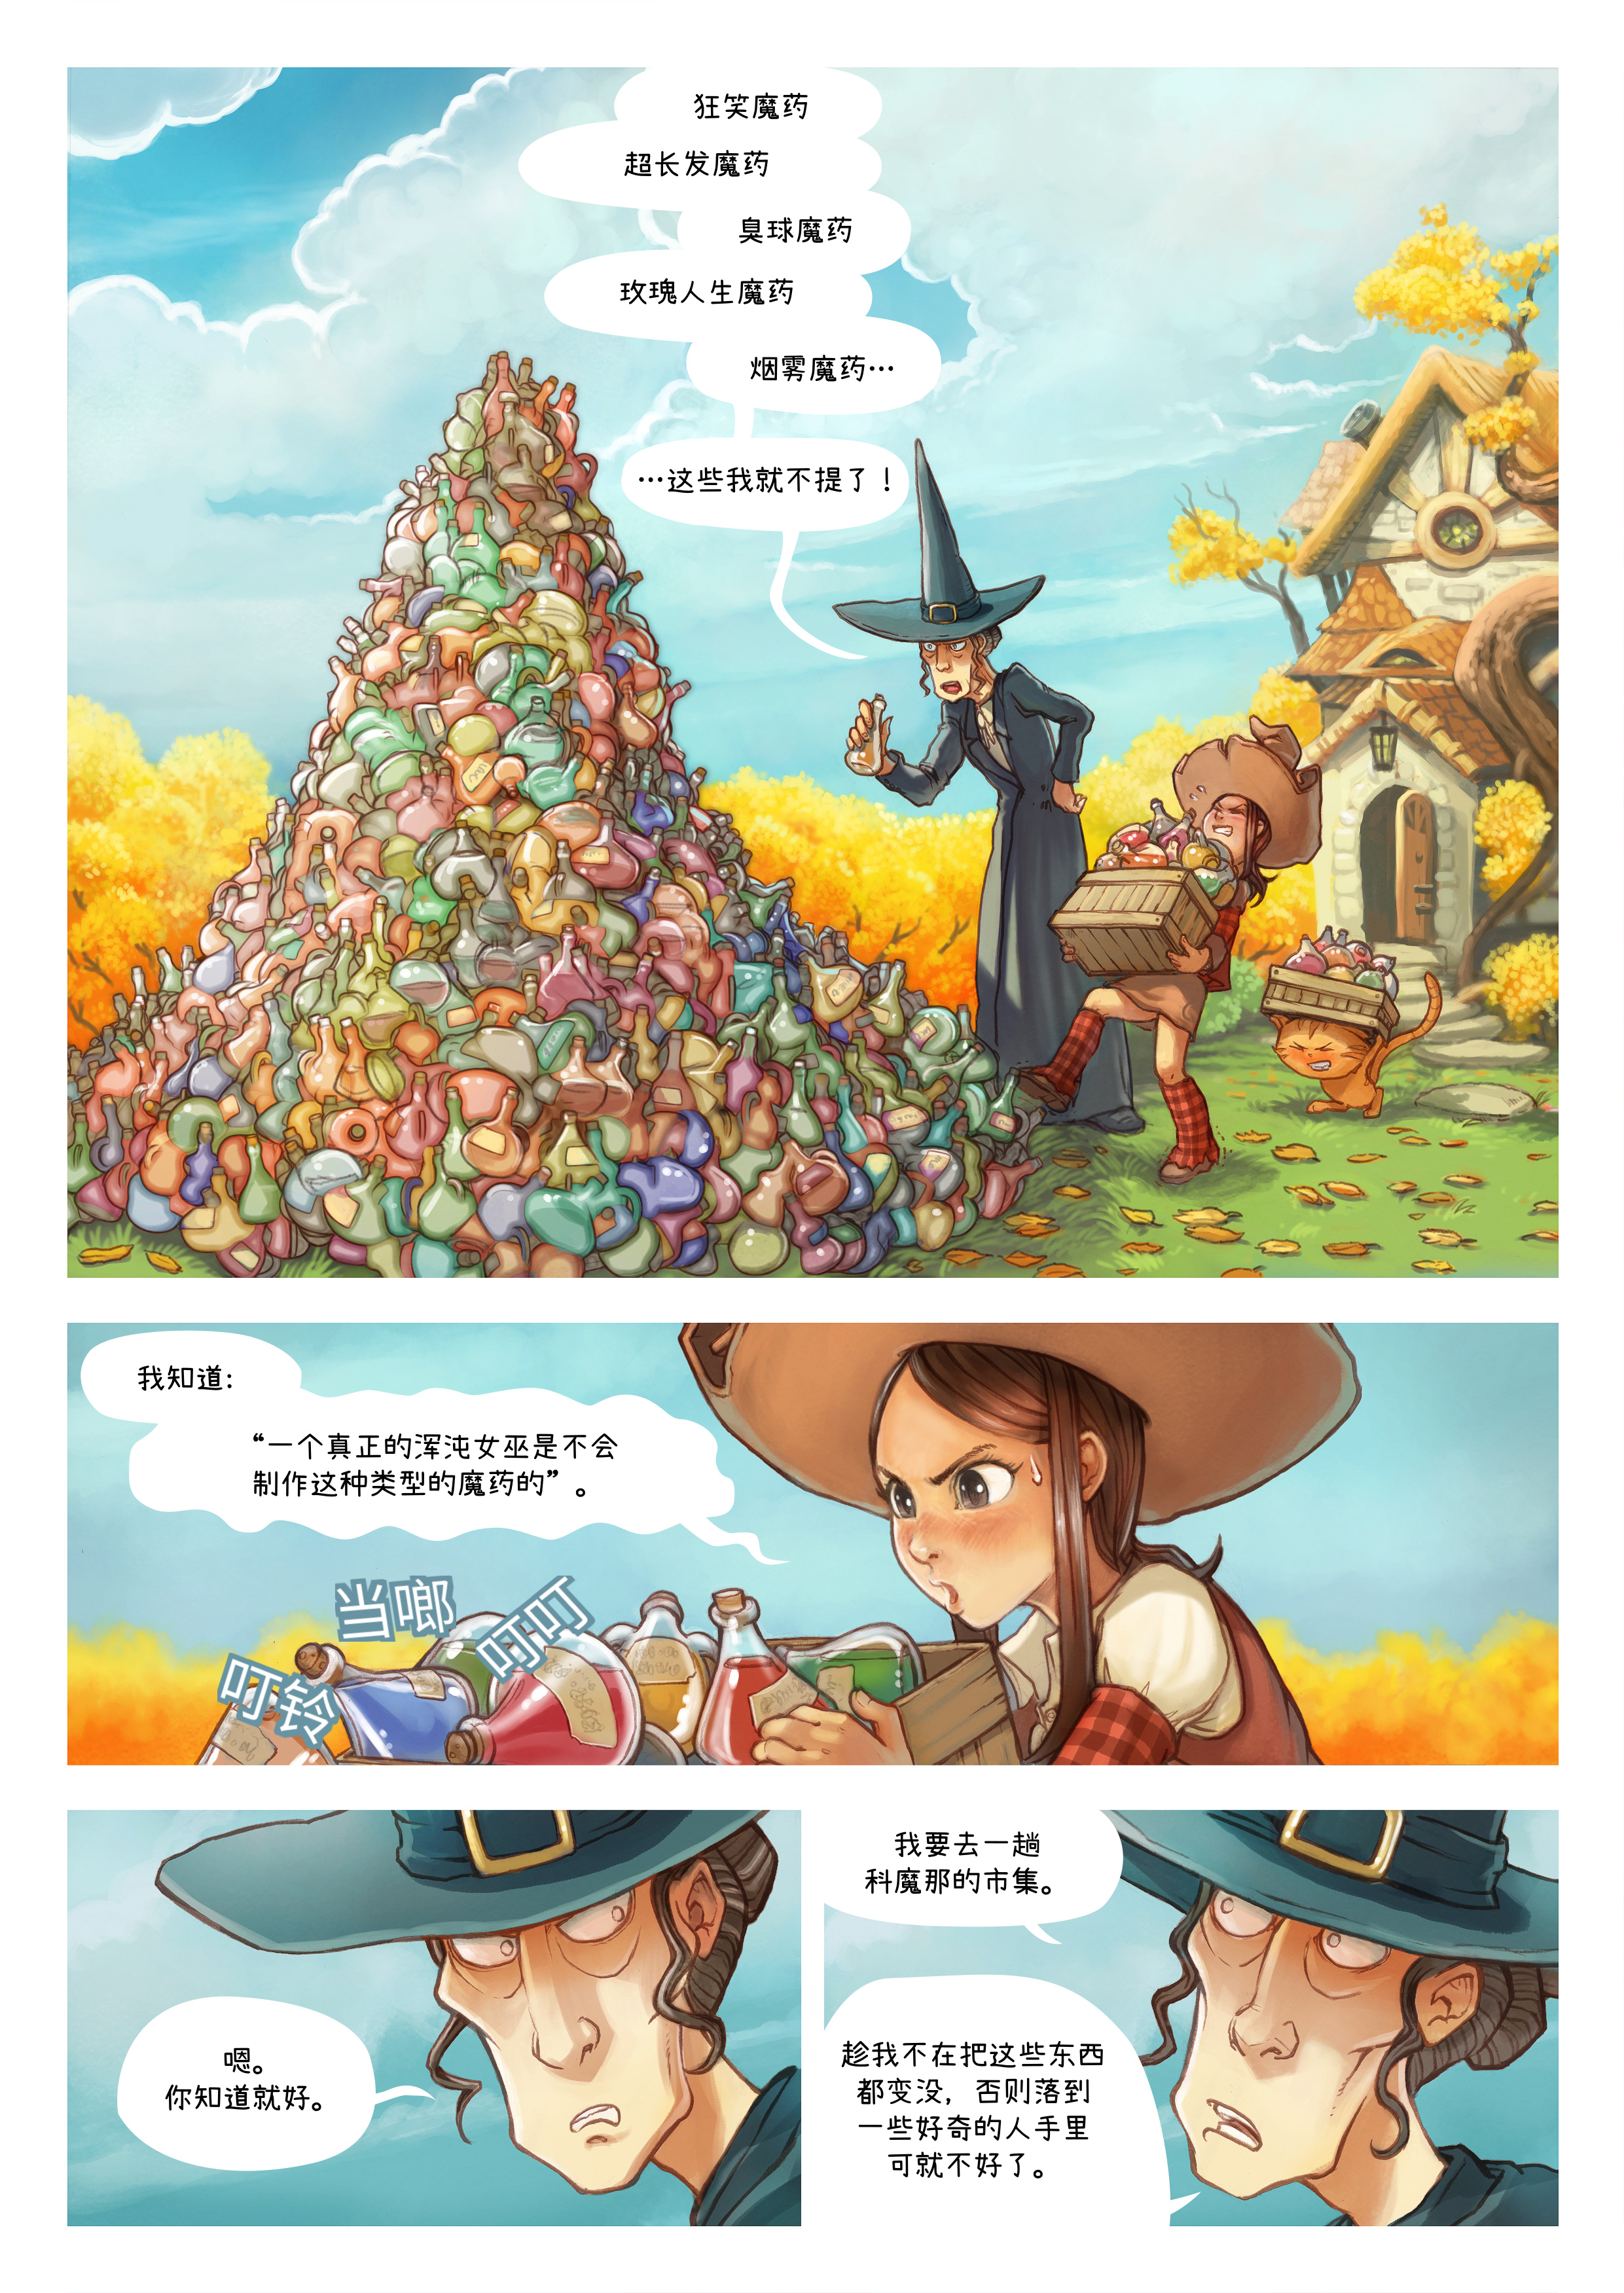 A webcomic page of Pepper&Carrot, 漫画全集 12 [cn], 页面 1